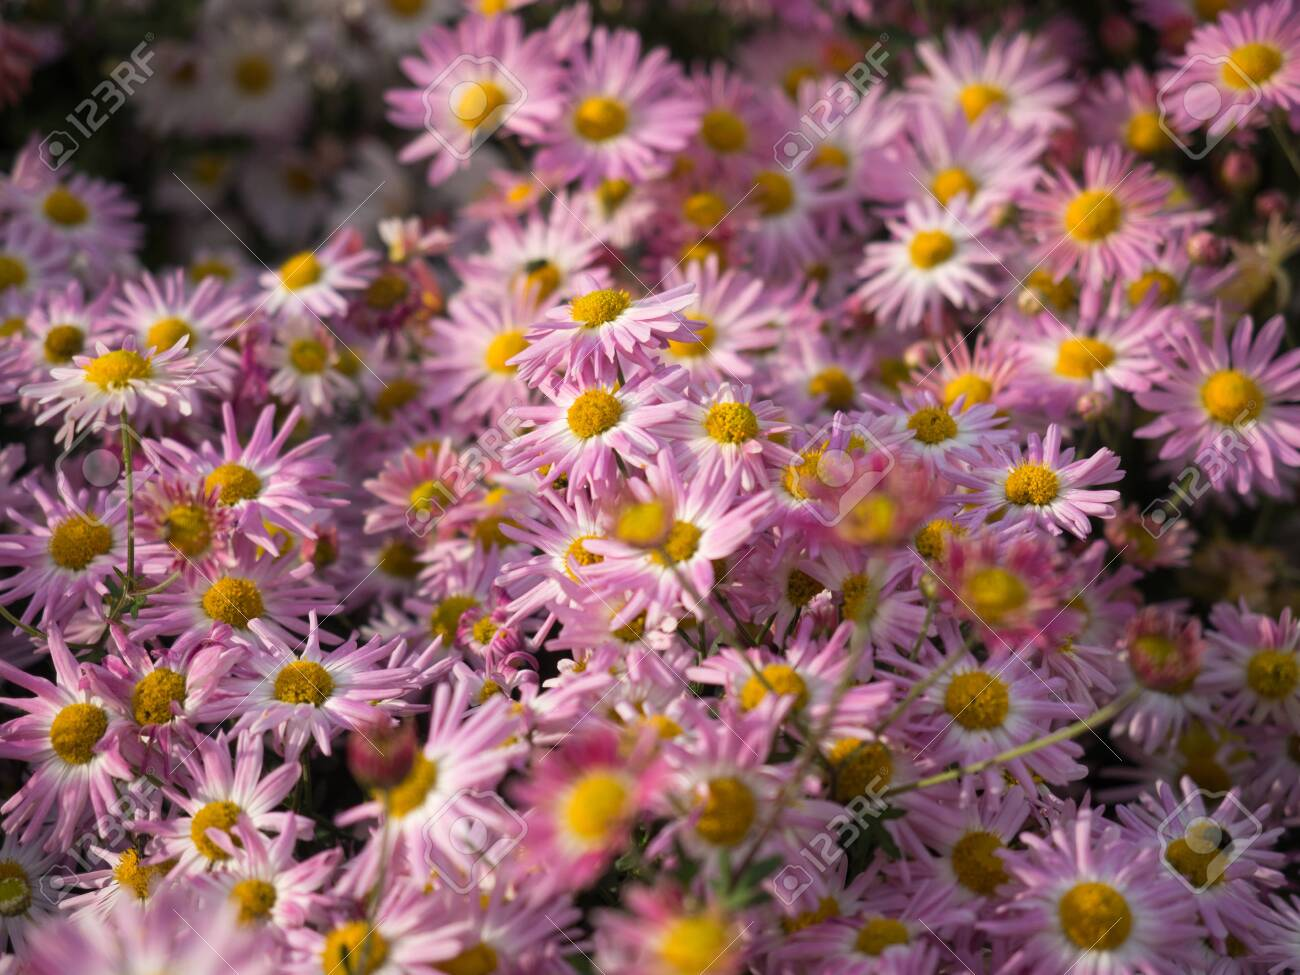 Butterfly In A Garden Of Pale Pink Chrysanthemums Flowers Stock